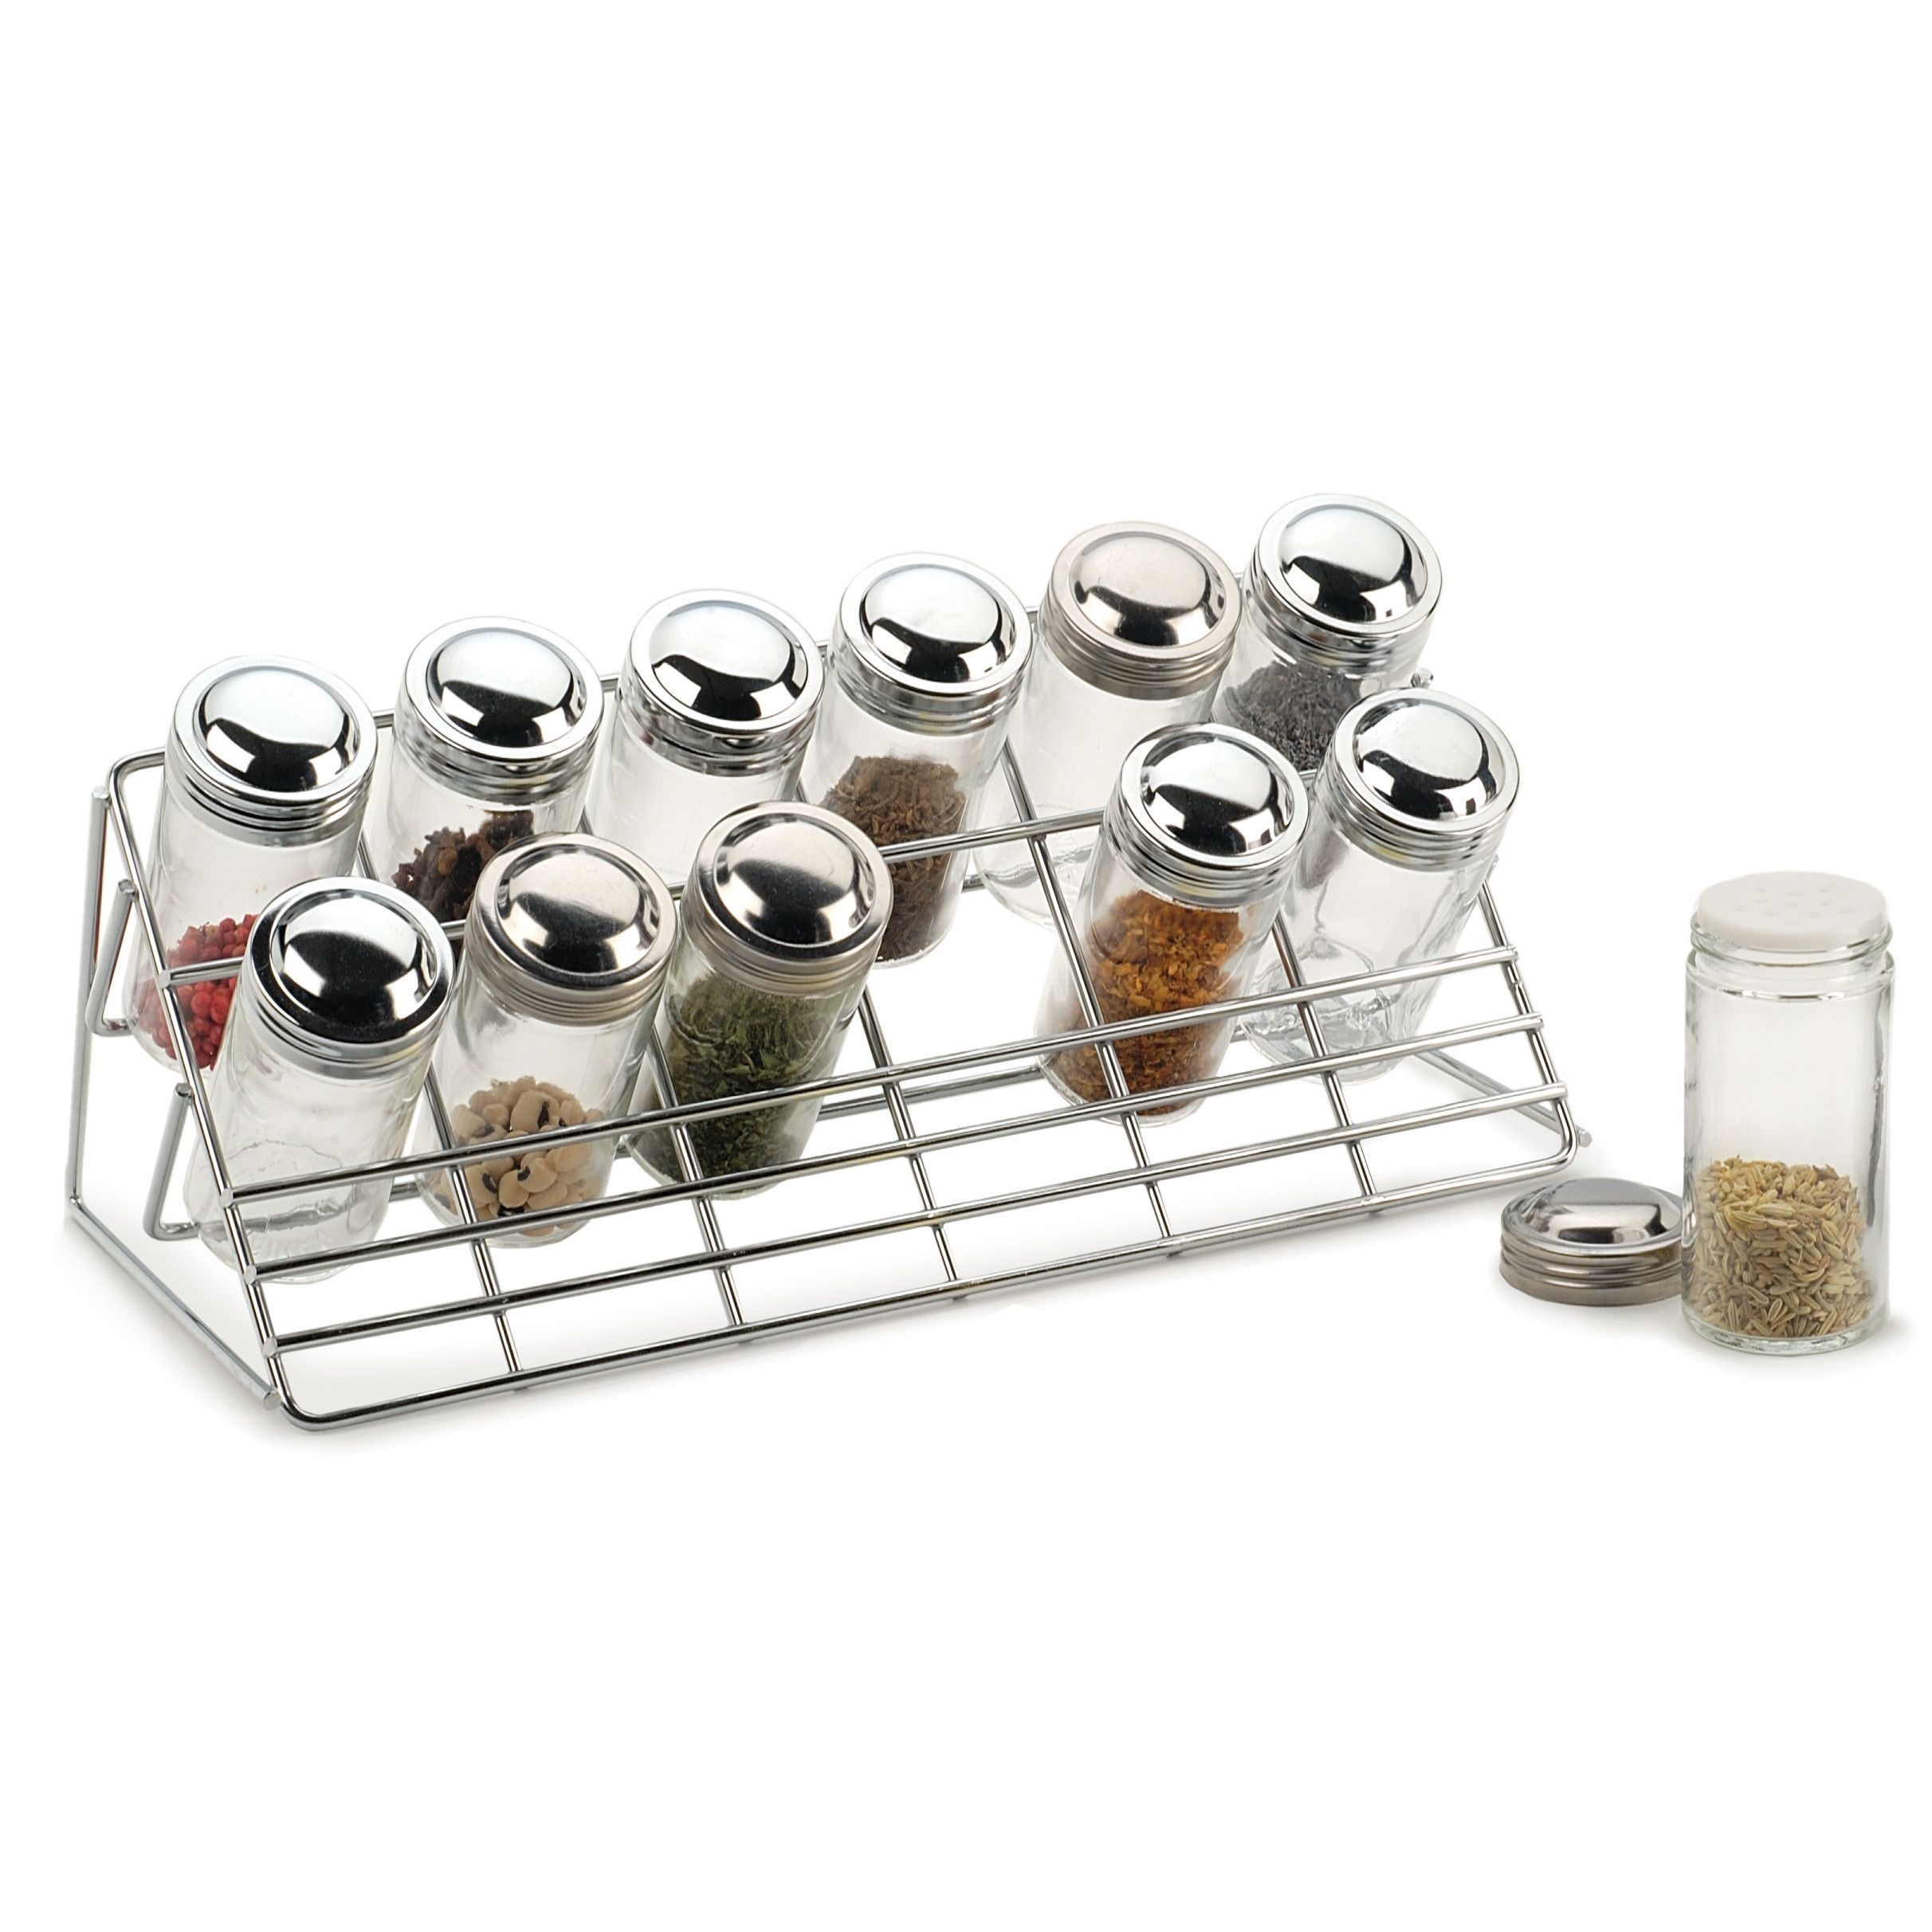 RSVP-INTL 13 Piece Countertop Spice Rack Set